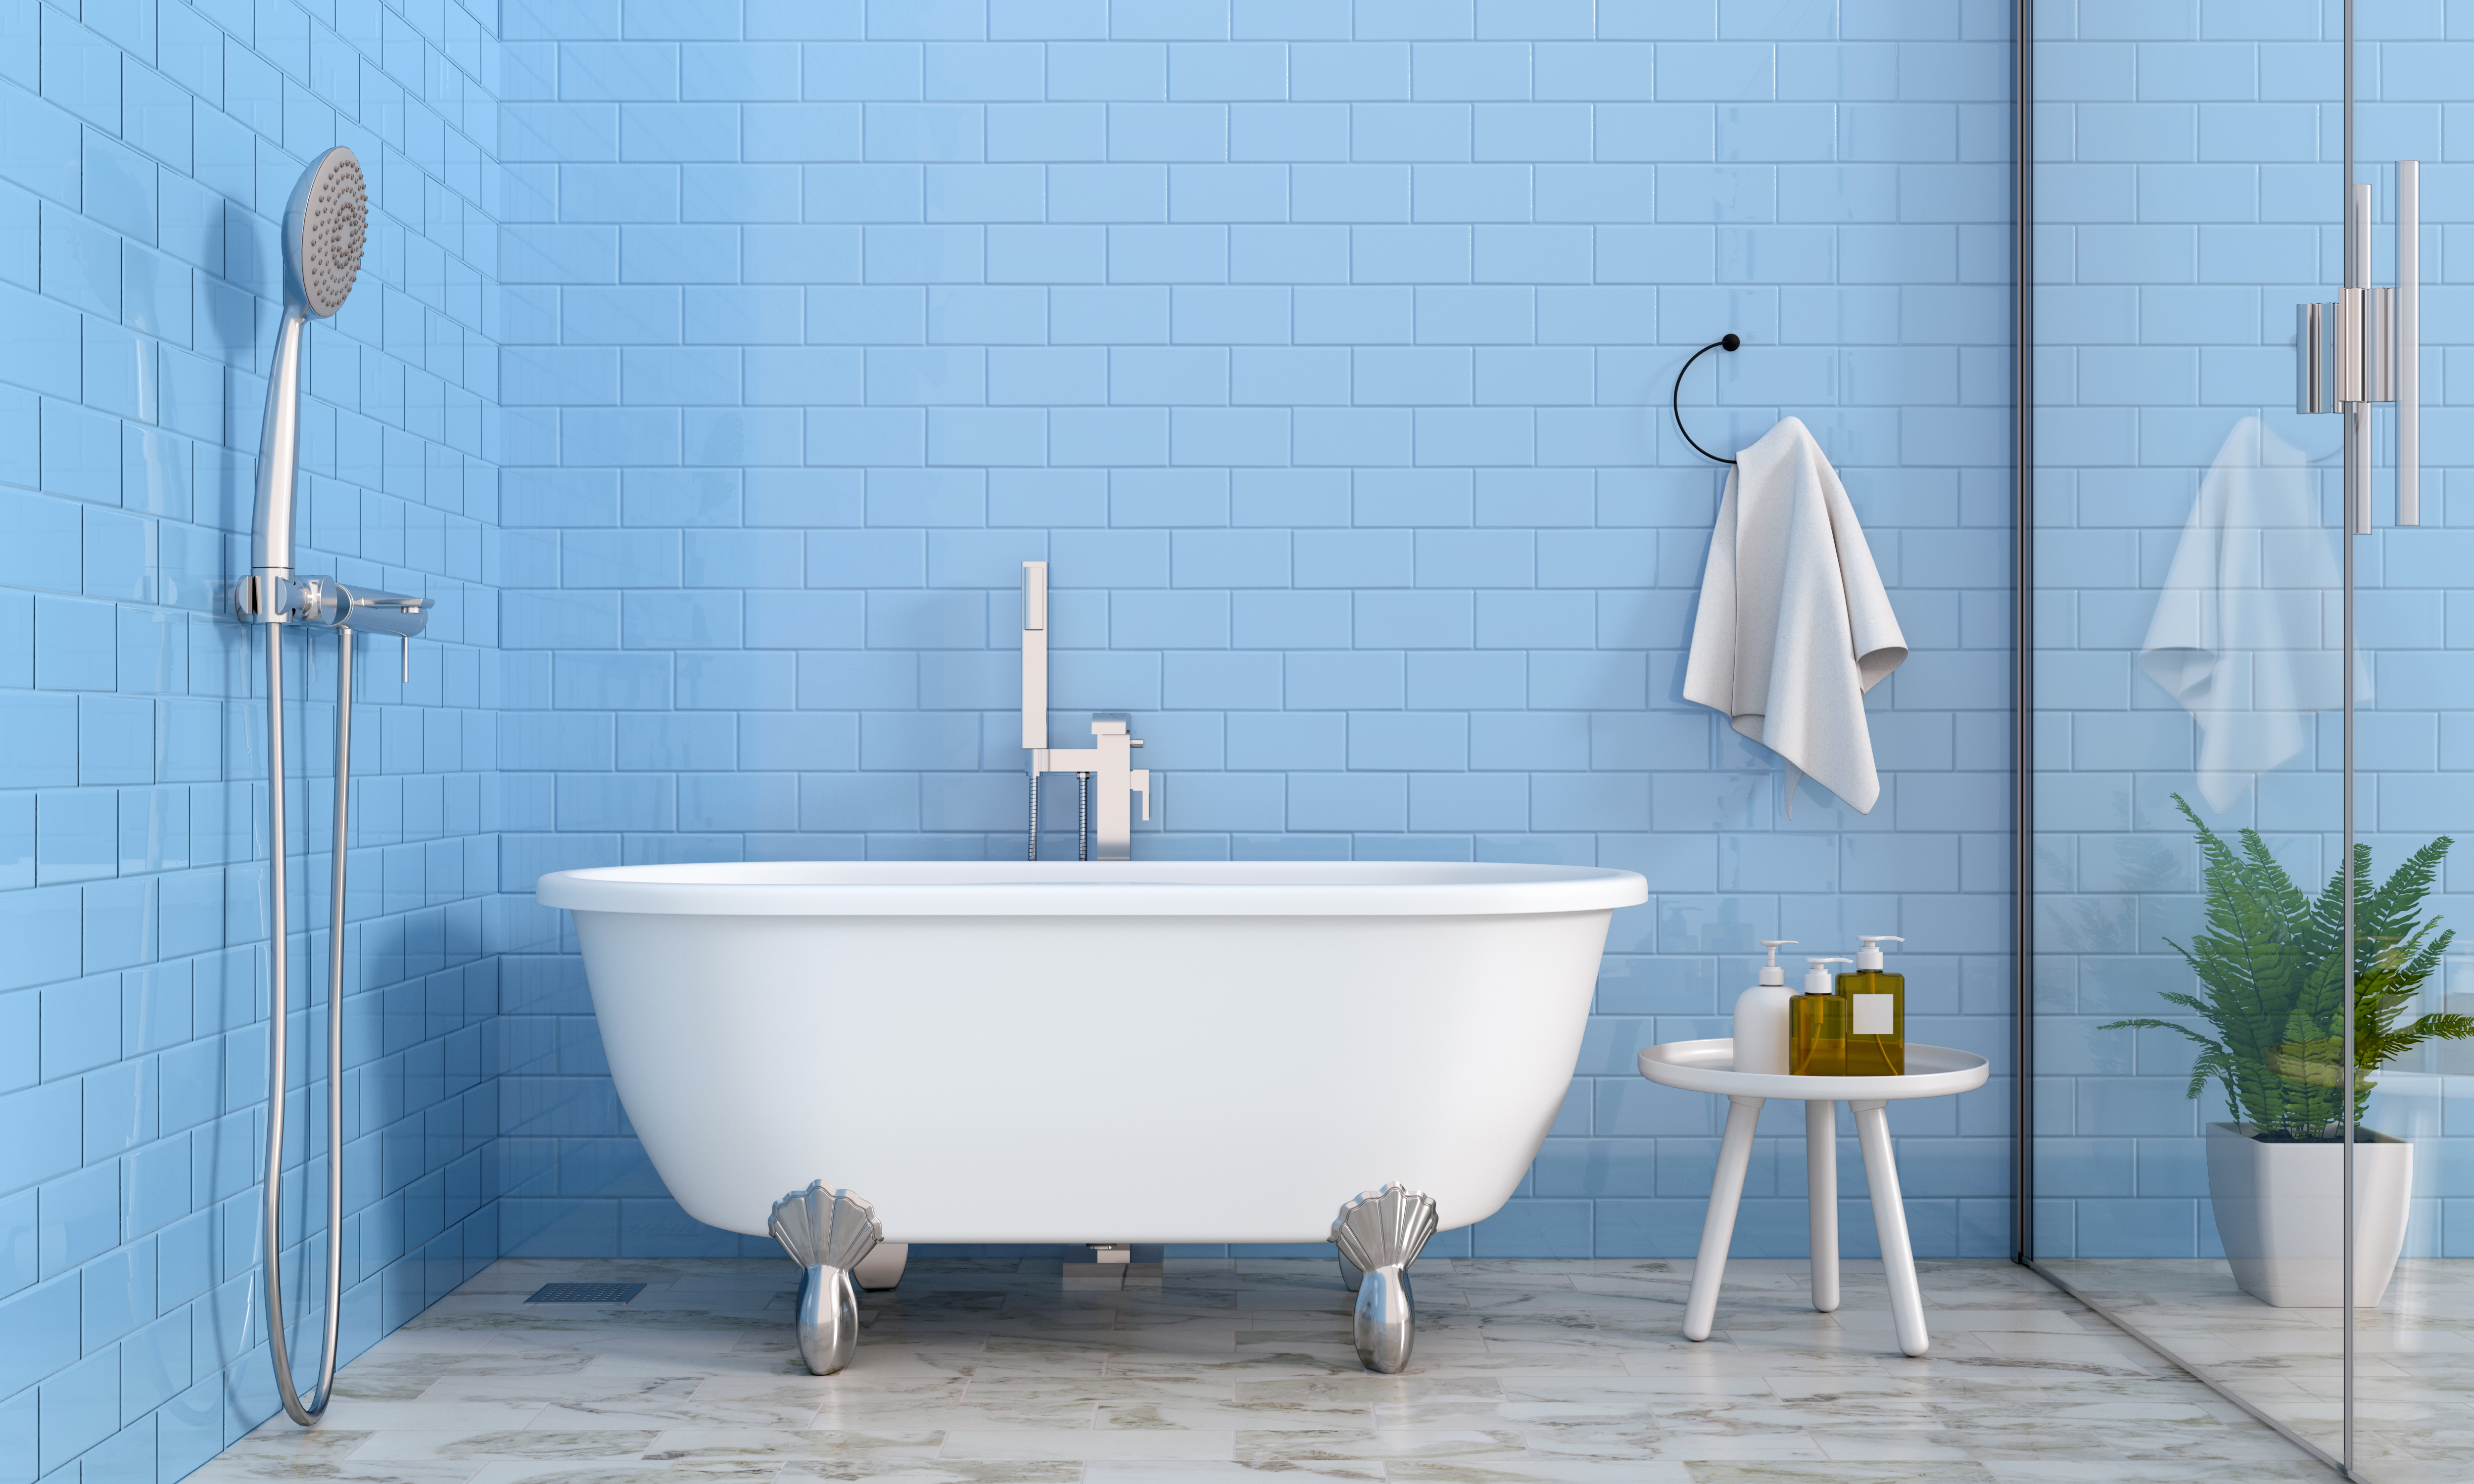 What Type of Grout Is Used on Tile Joints in a Shower? | Home Guides